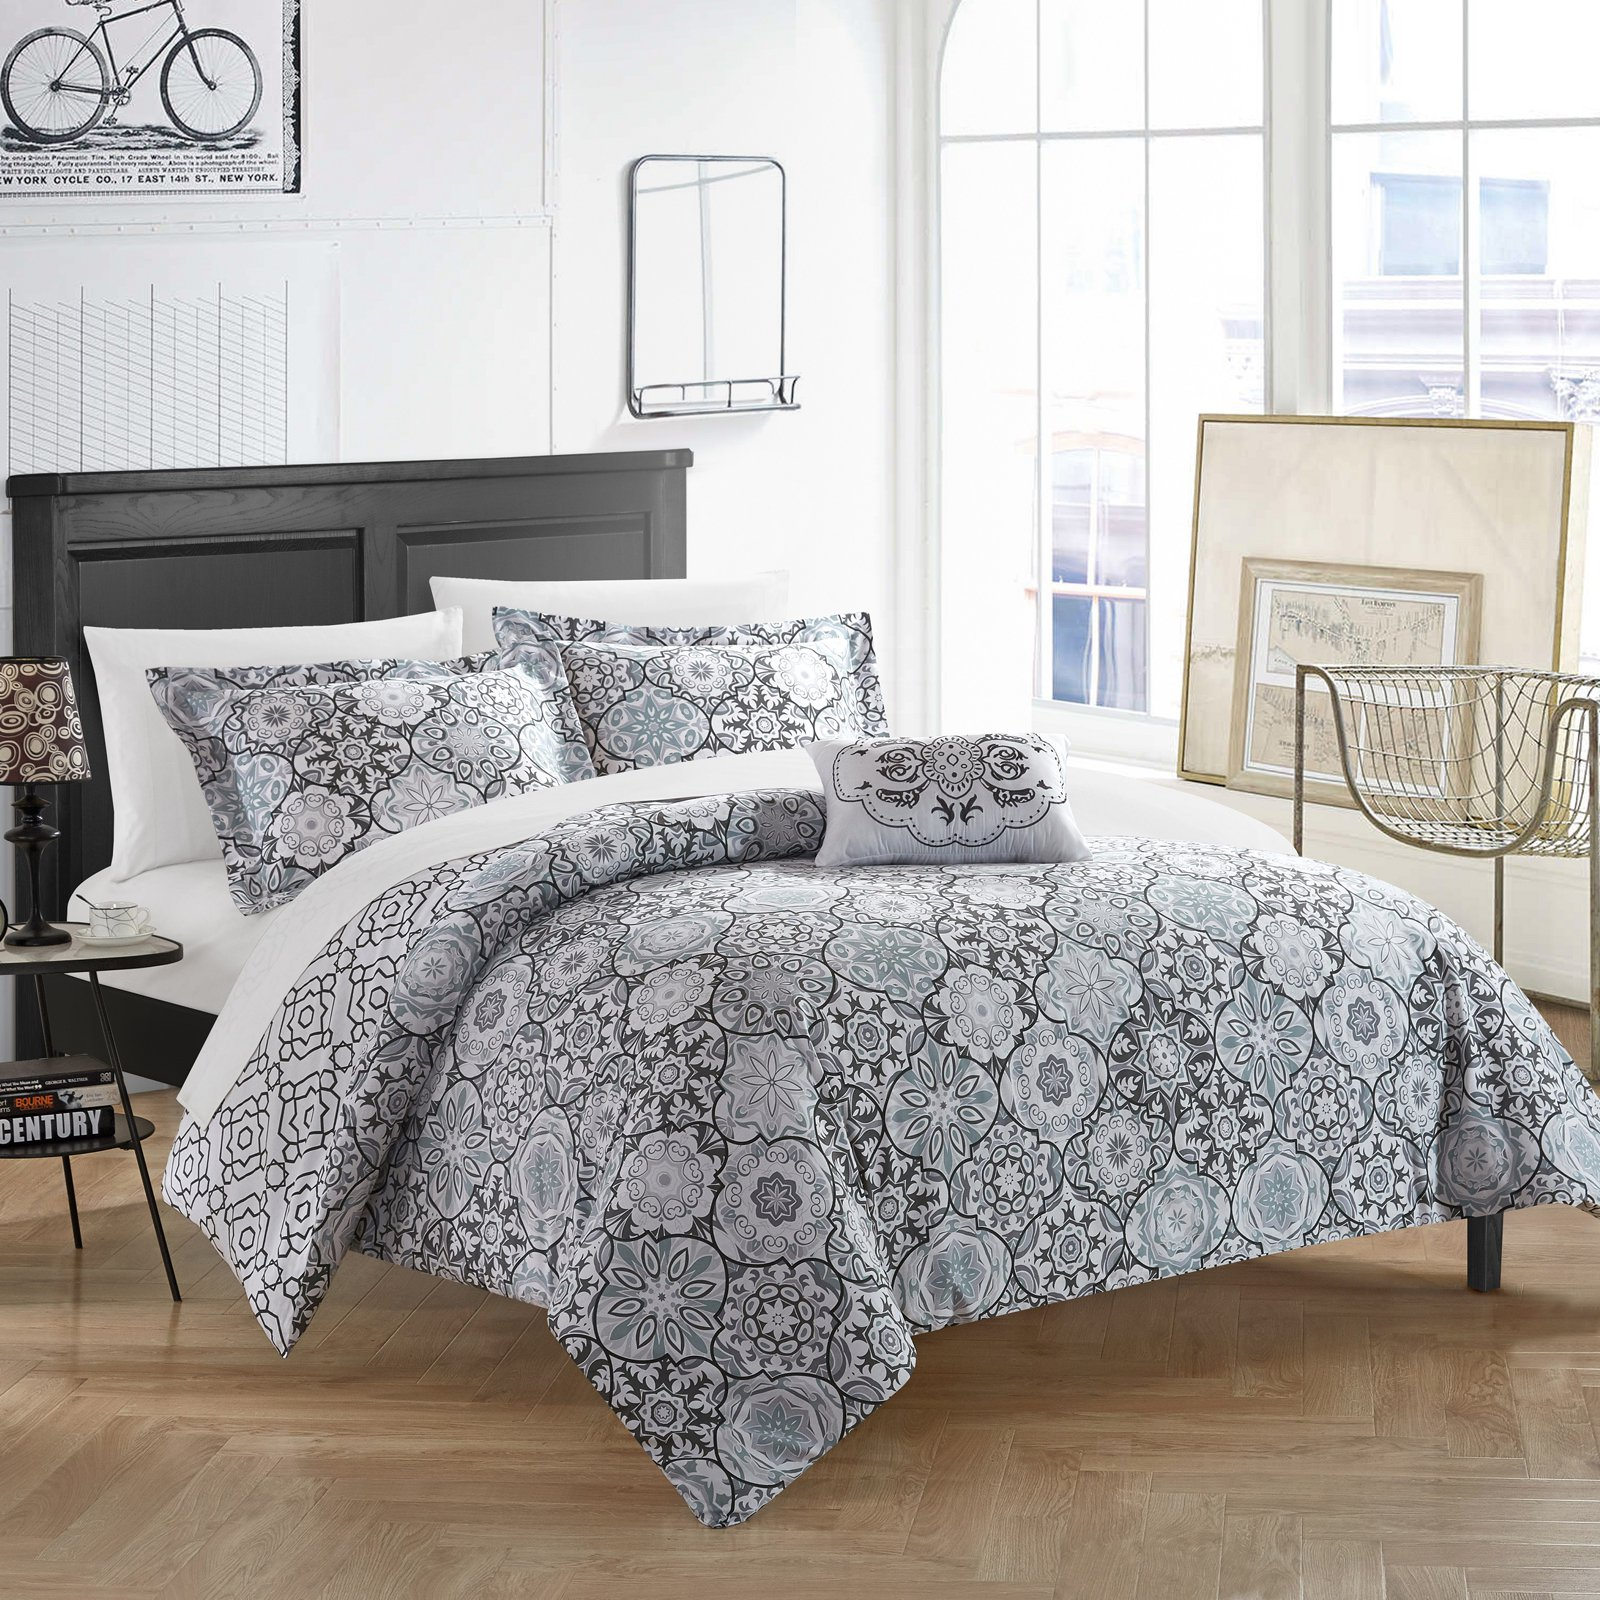 Chic Home 4-Piece Winona 100% Cotton 200 Thread Count Bohemian Inspired Printed REVERSIBLE Duvet Cover Set